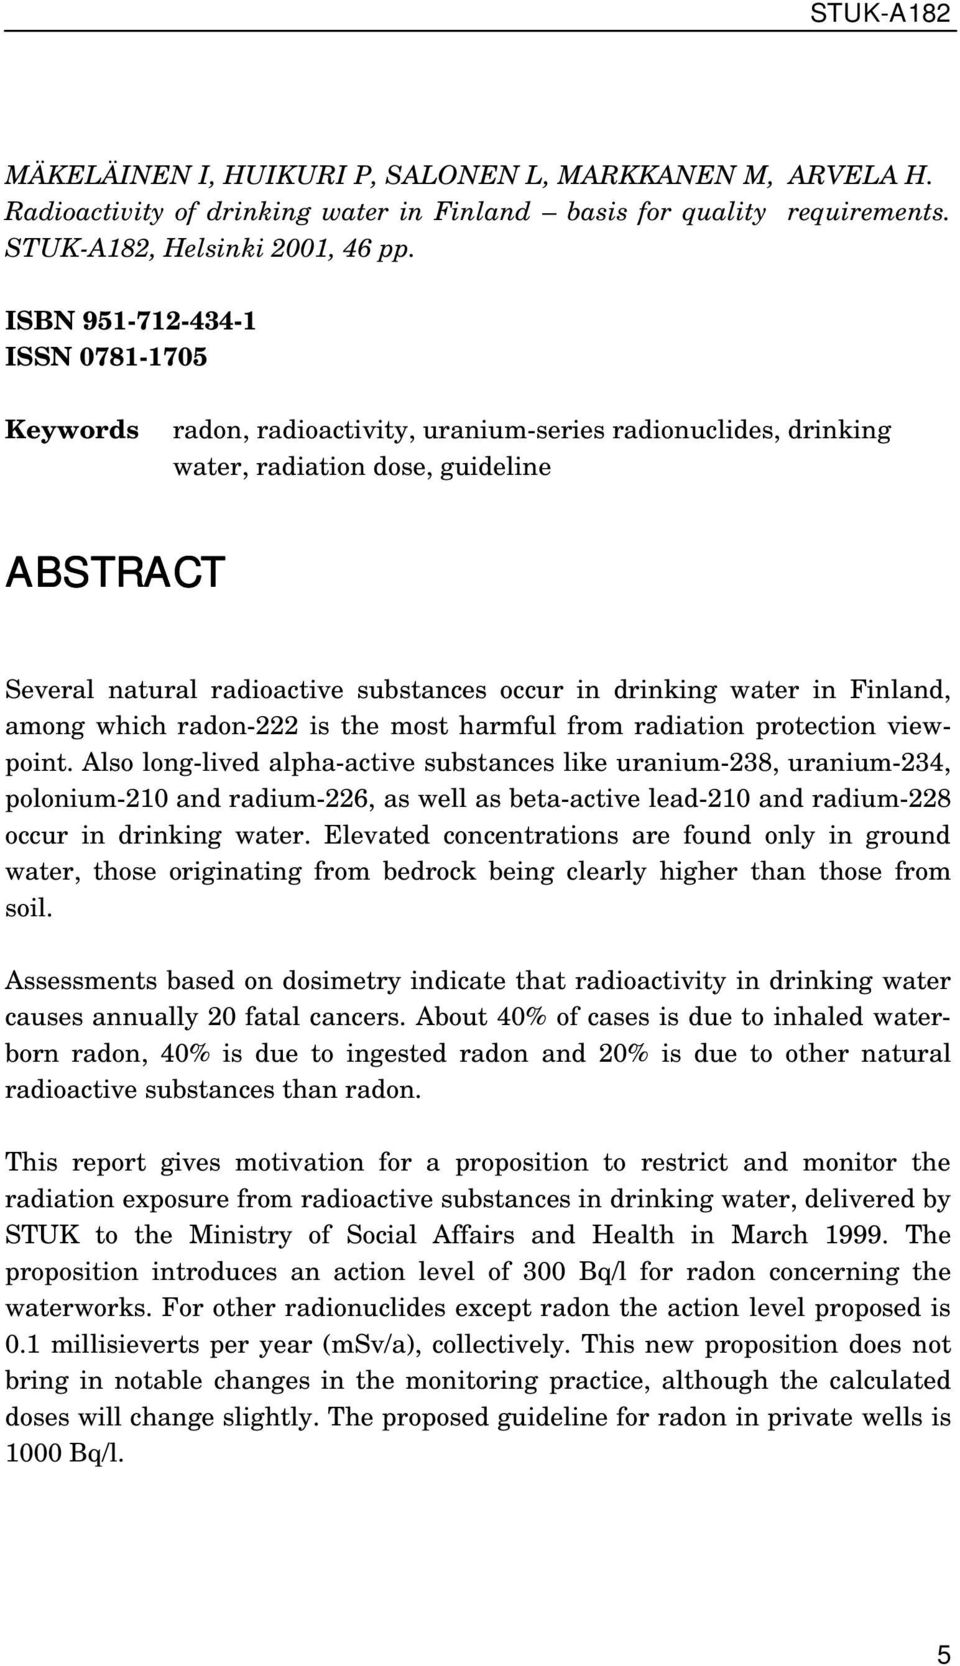 drinking water in Finland, among which radon-222 is the most harmful from radiation protection viewpoint.